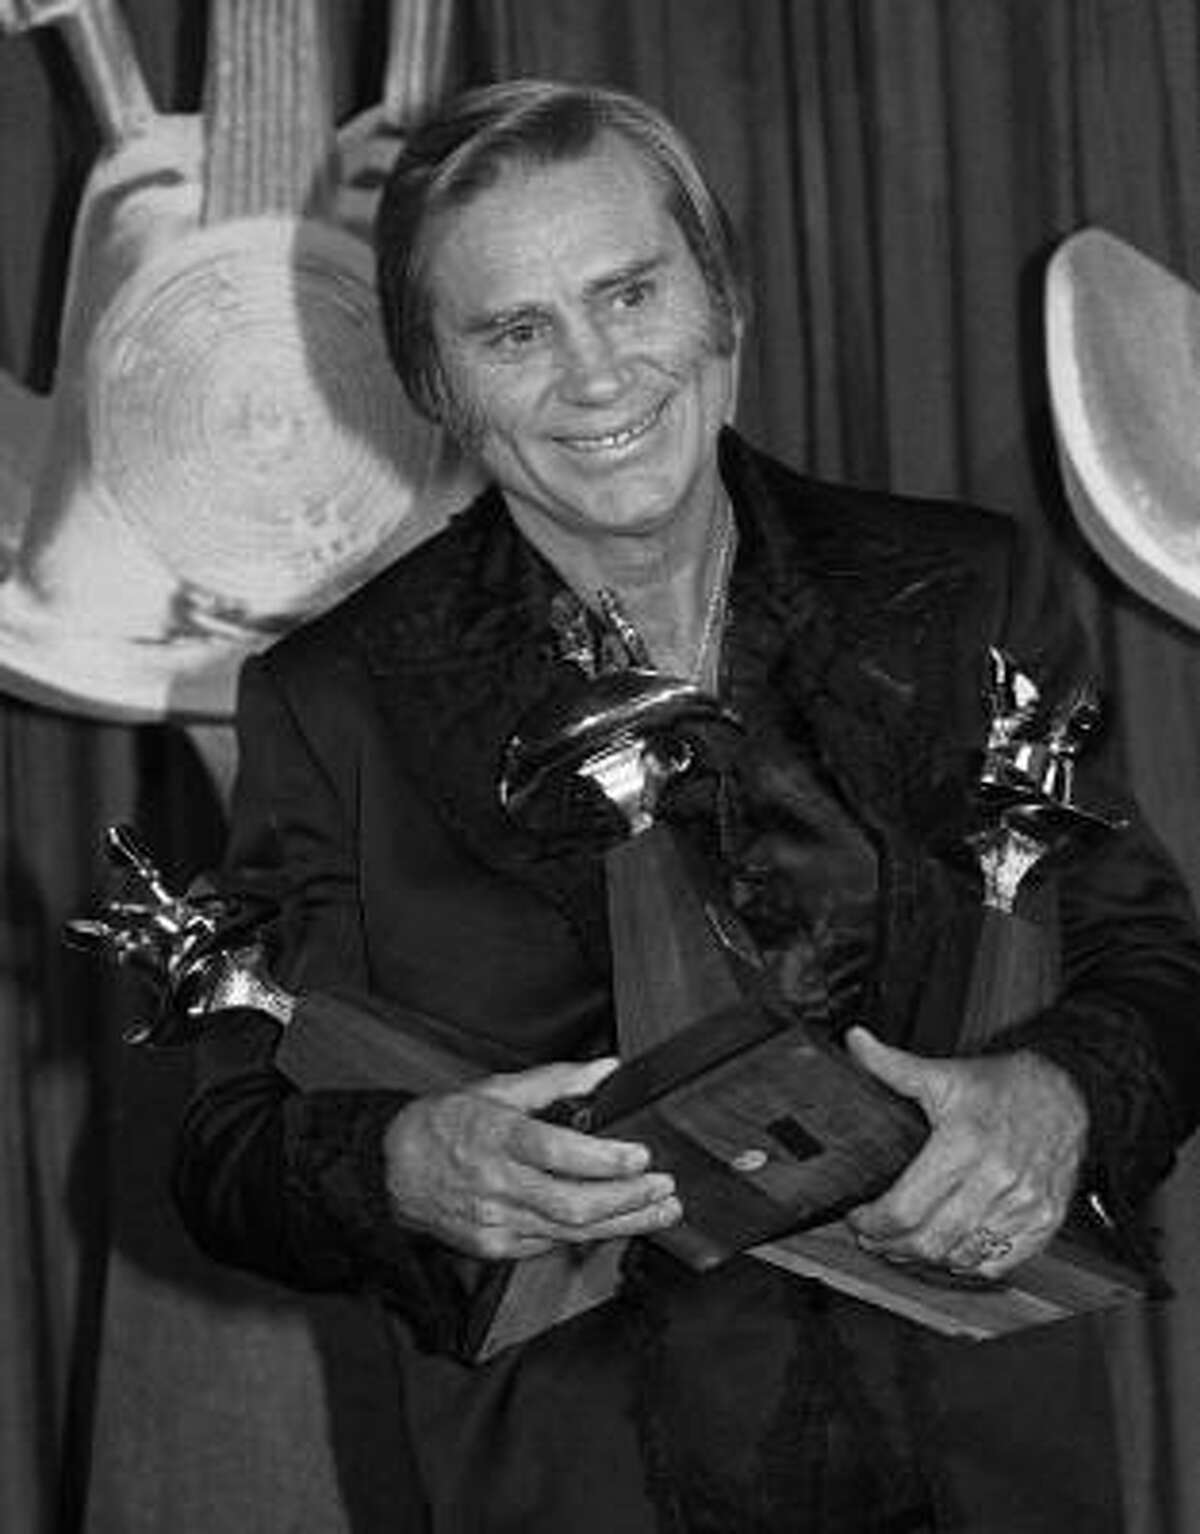 George Jones received three awards during the 16th Annual Country Music Awards in May of 1981.